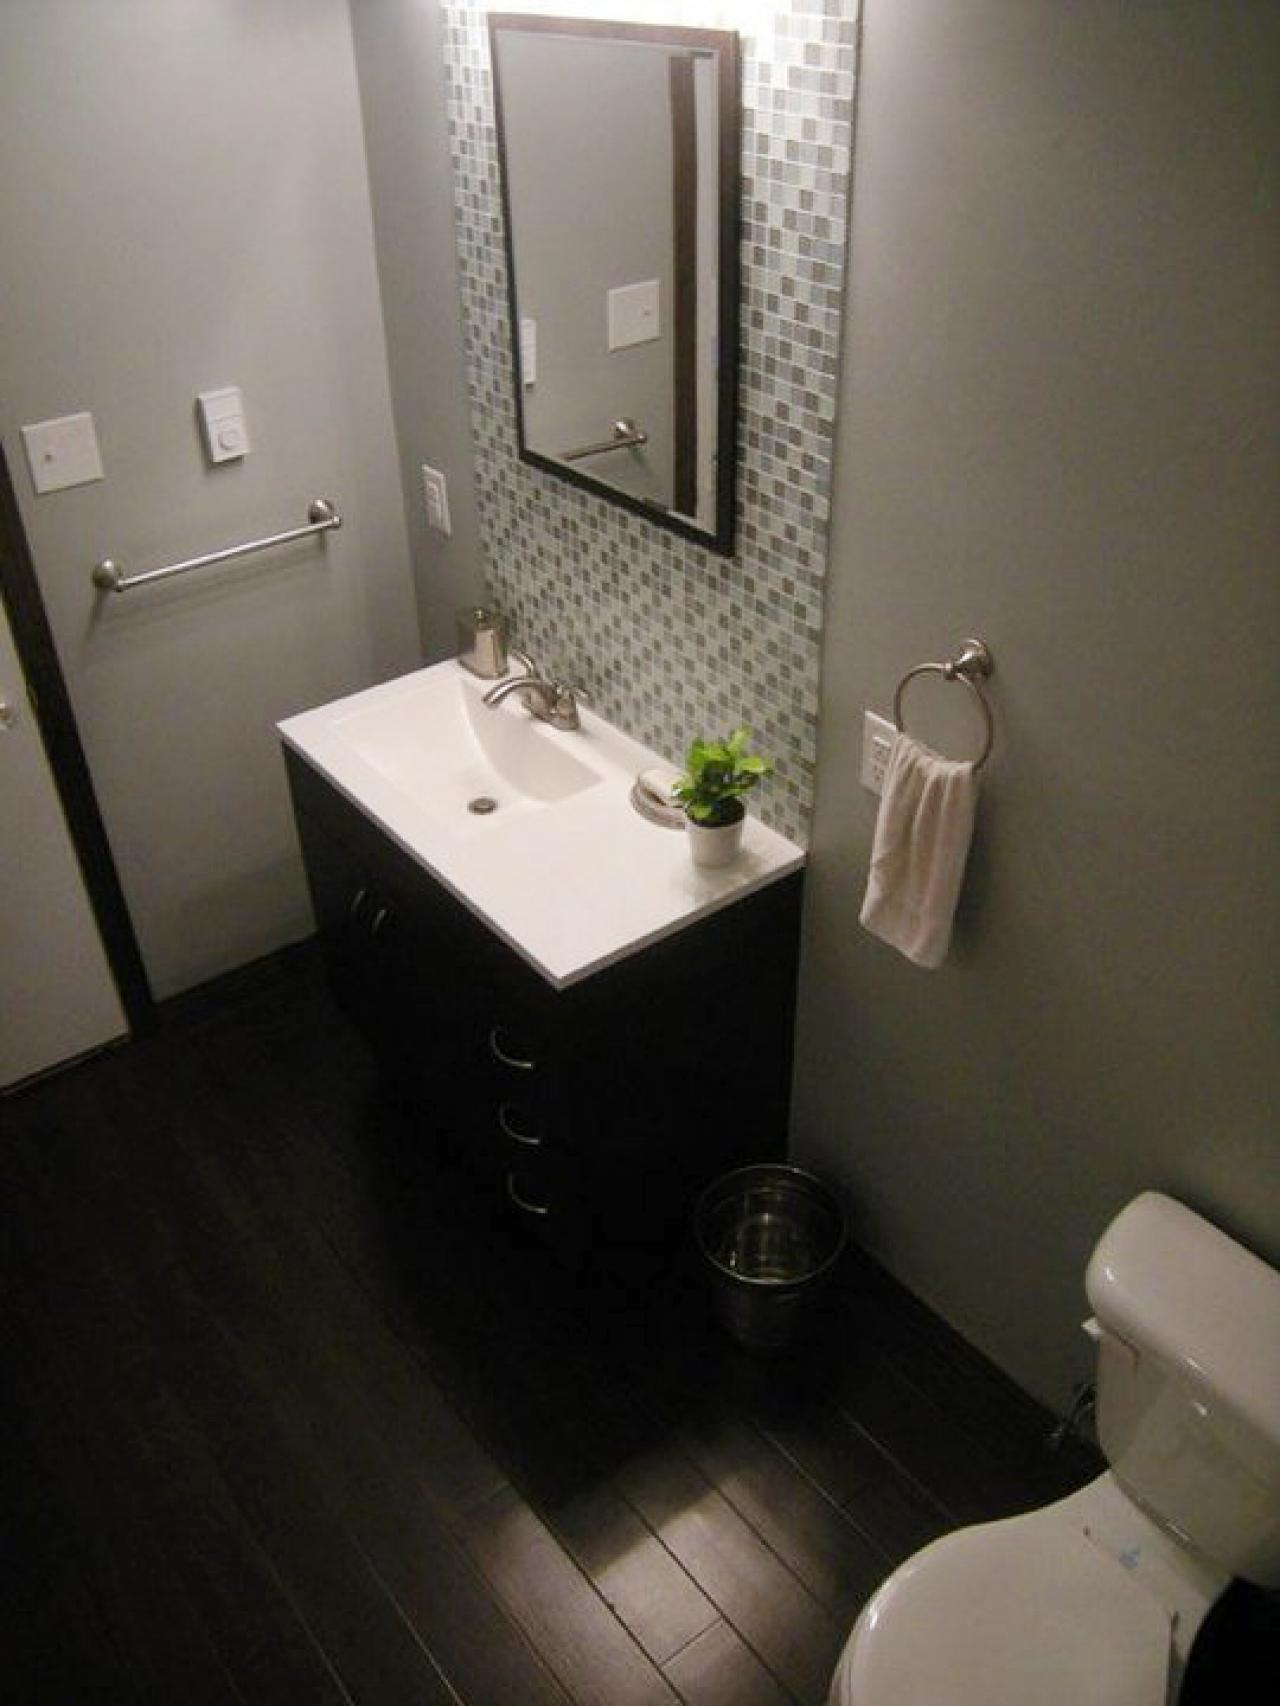 Amazing Design Of The Brown Wooden Floor Added With Brown Wooden Cabinets And White Sink As The Diy Bathroom Remodel With Grey Wall